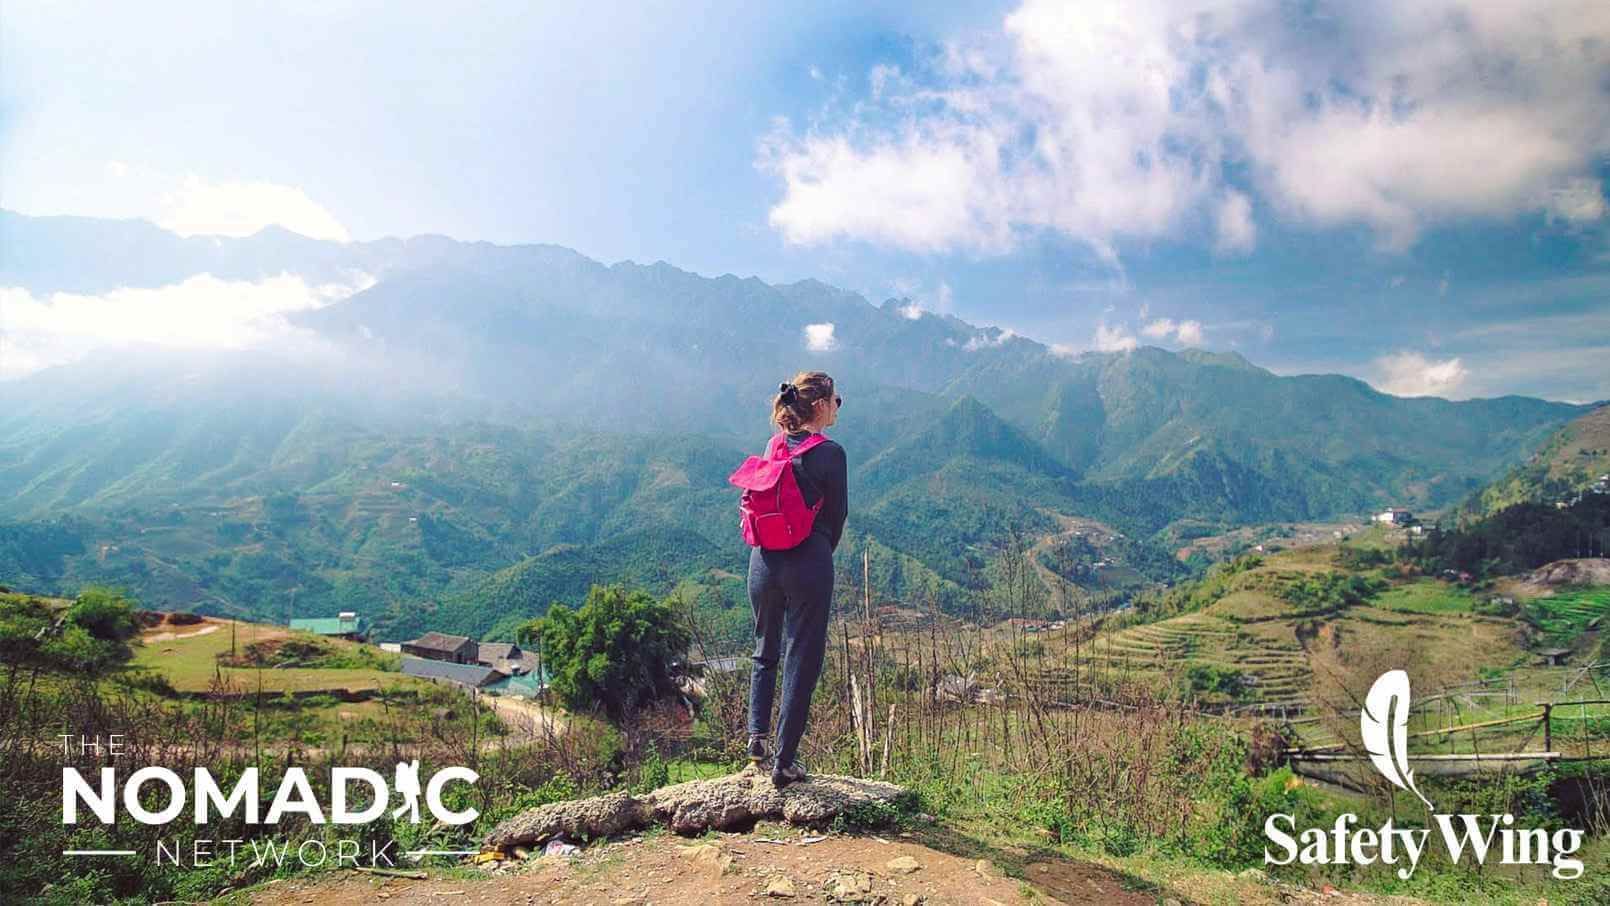 Founder of SafetyWing Sarah Sandnes looks onto lush mountainous landscape while traveling